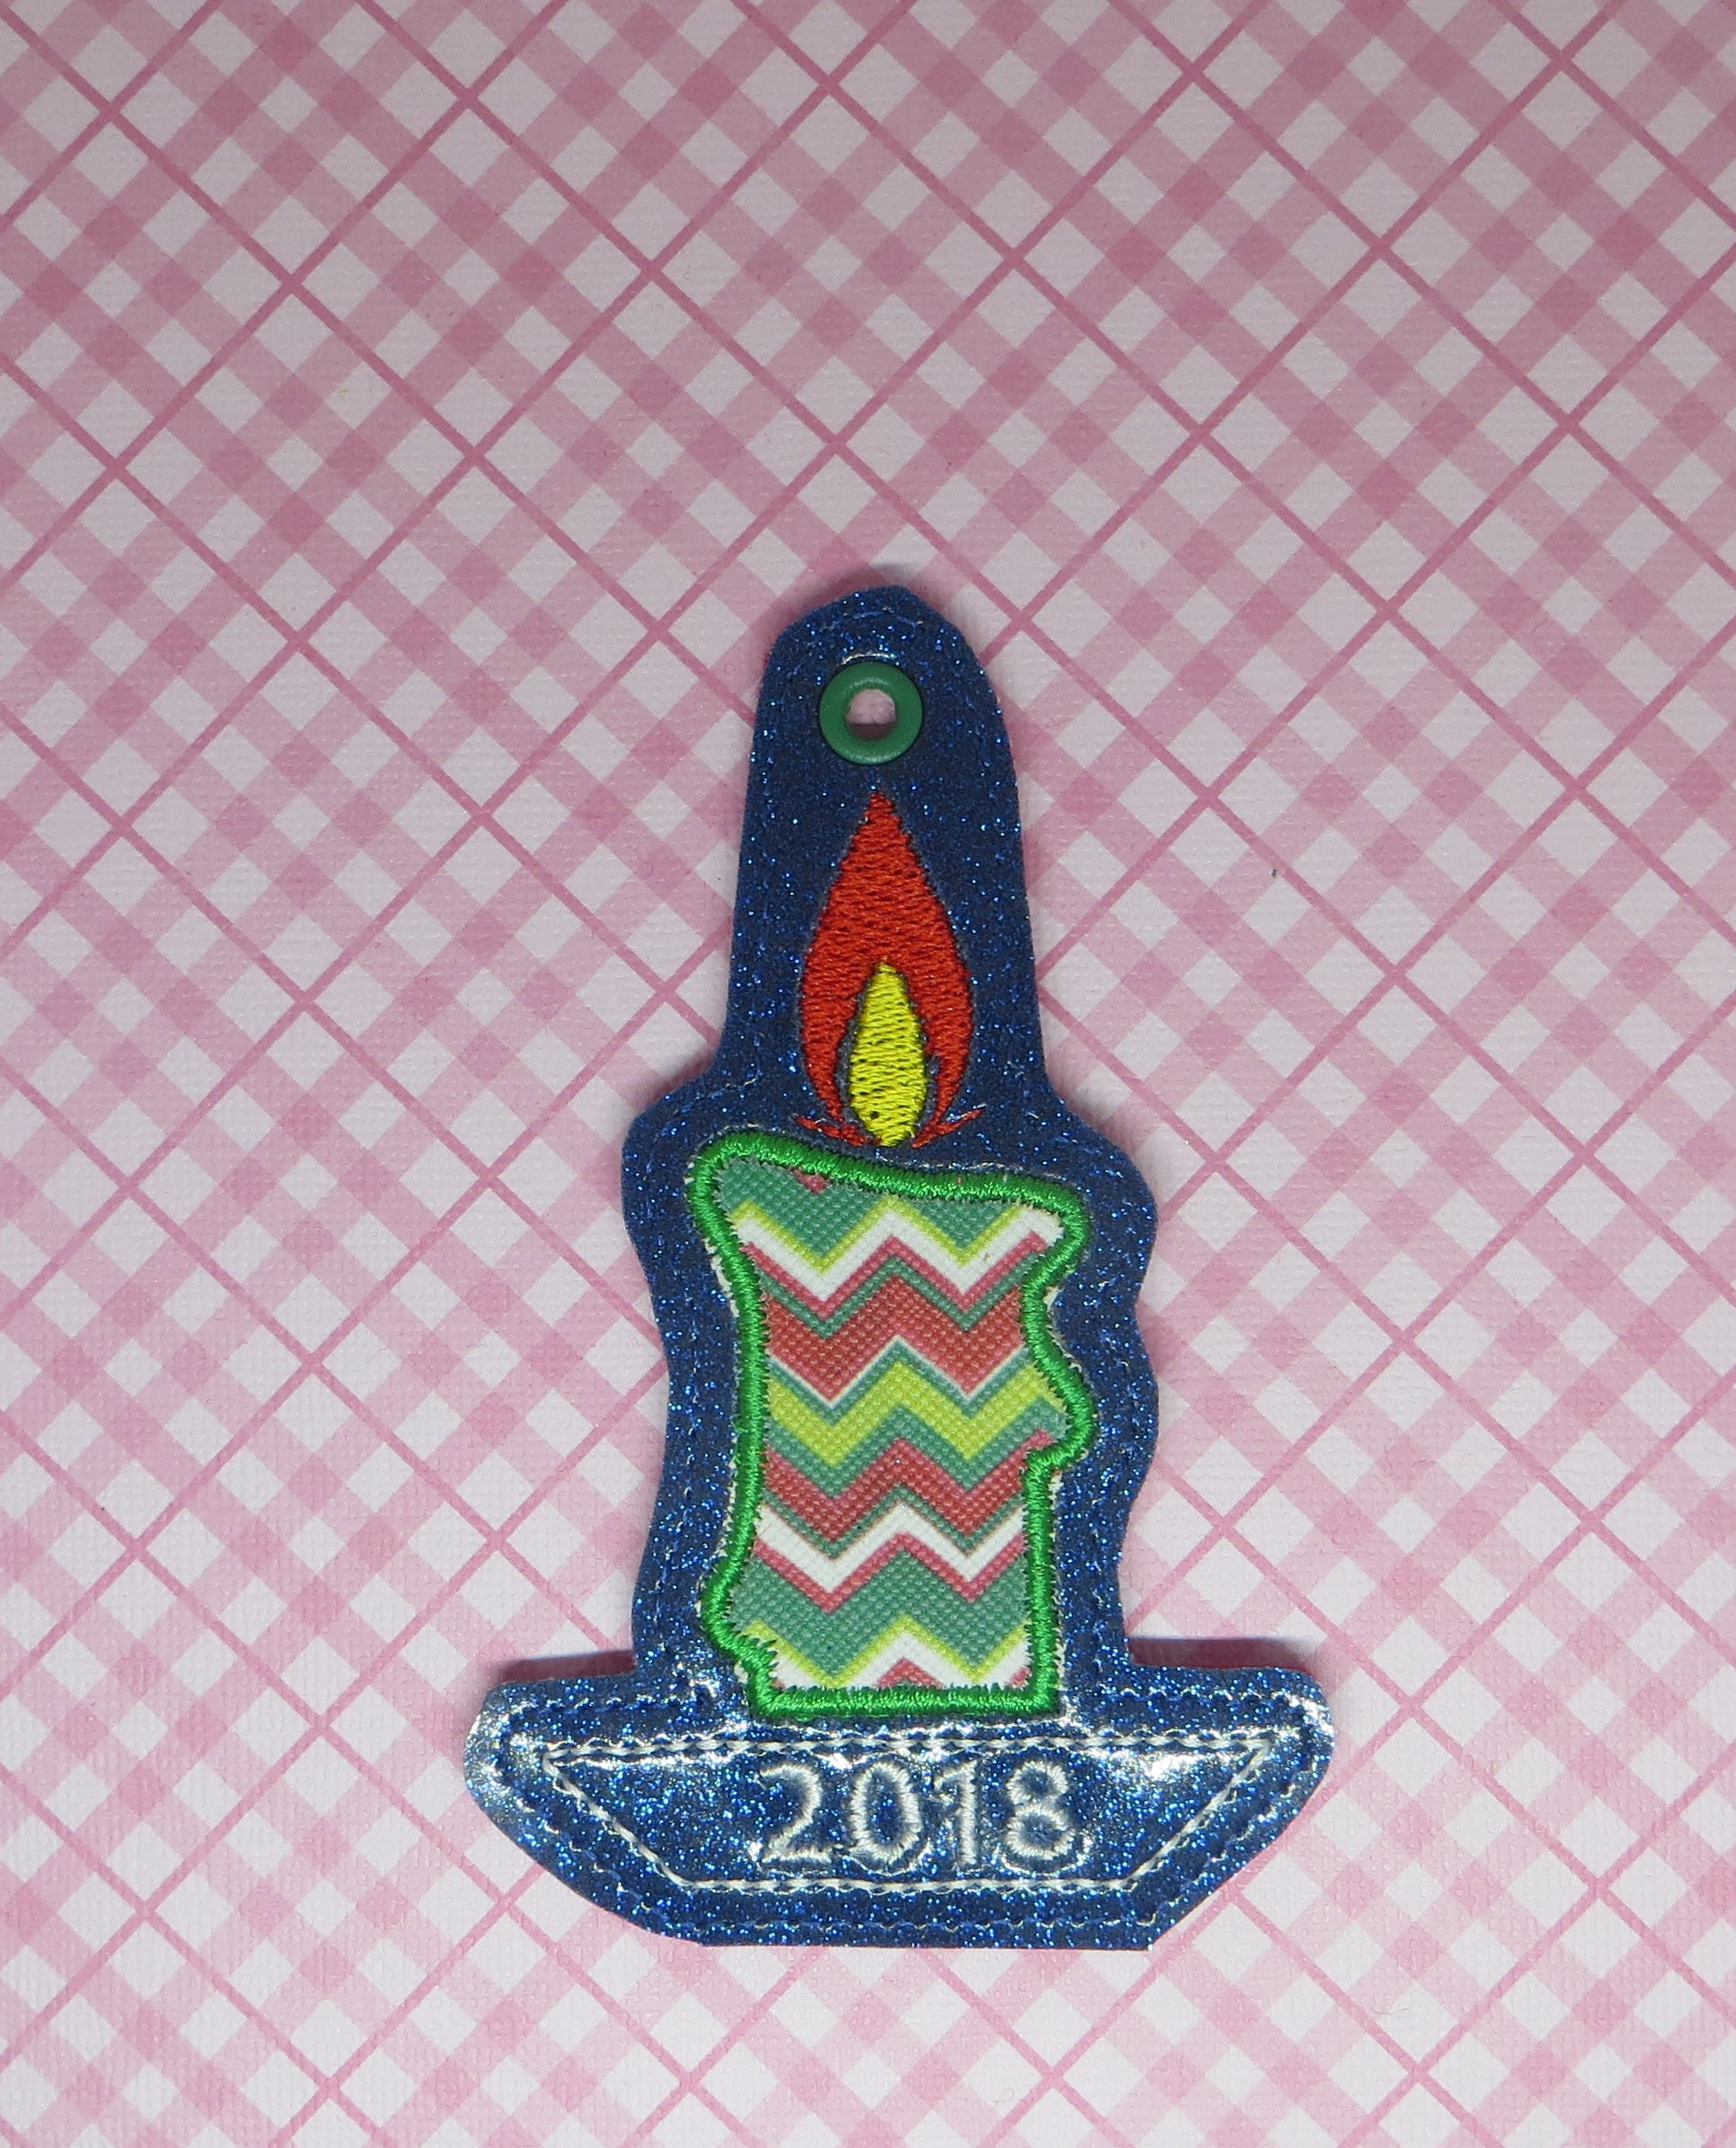 Candle Applique Ornament Embroidery Design